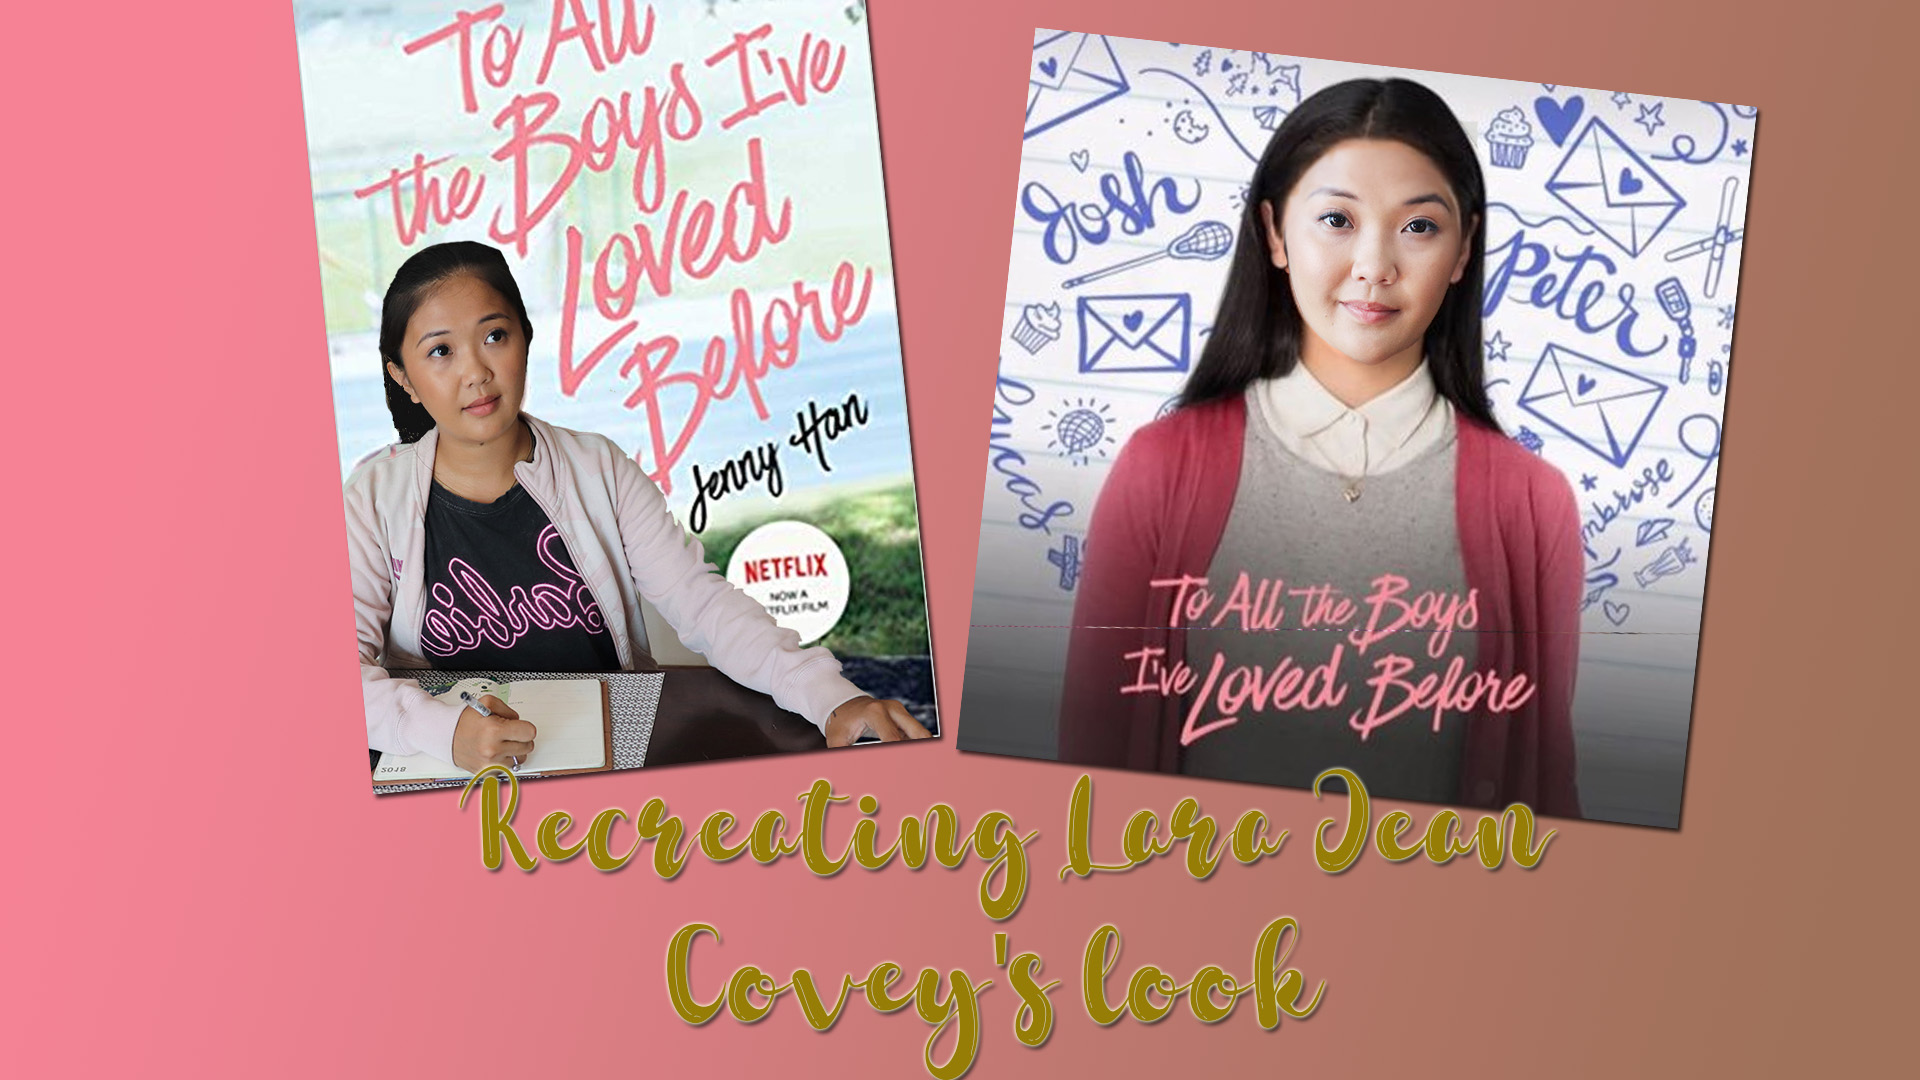 [VLOG] Recreating Lara Jean Covey's Look- To All The Boys I've Loved Before